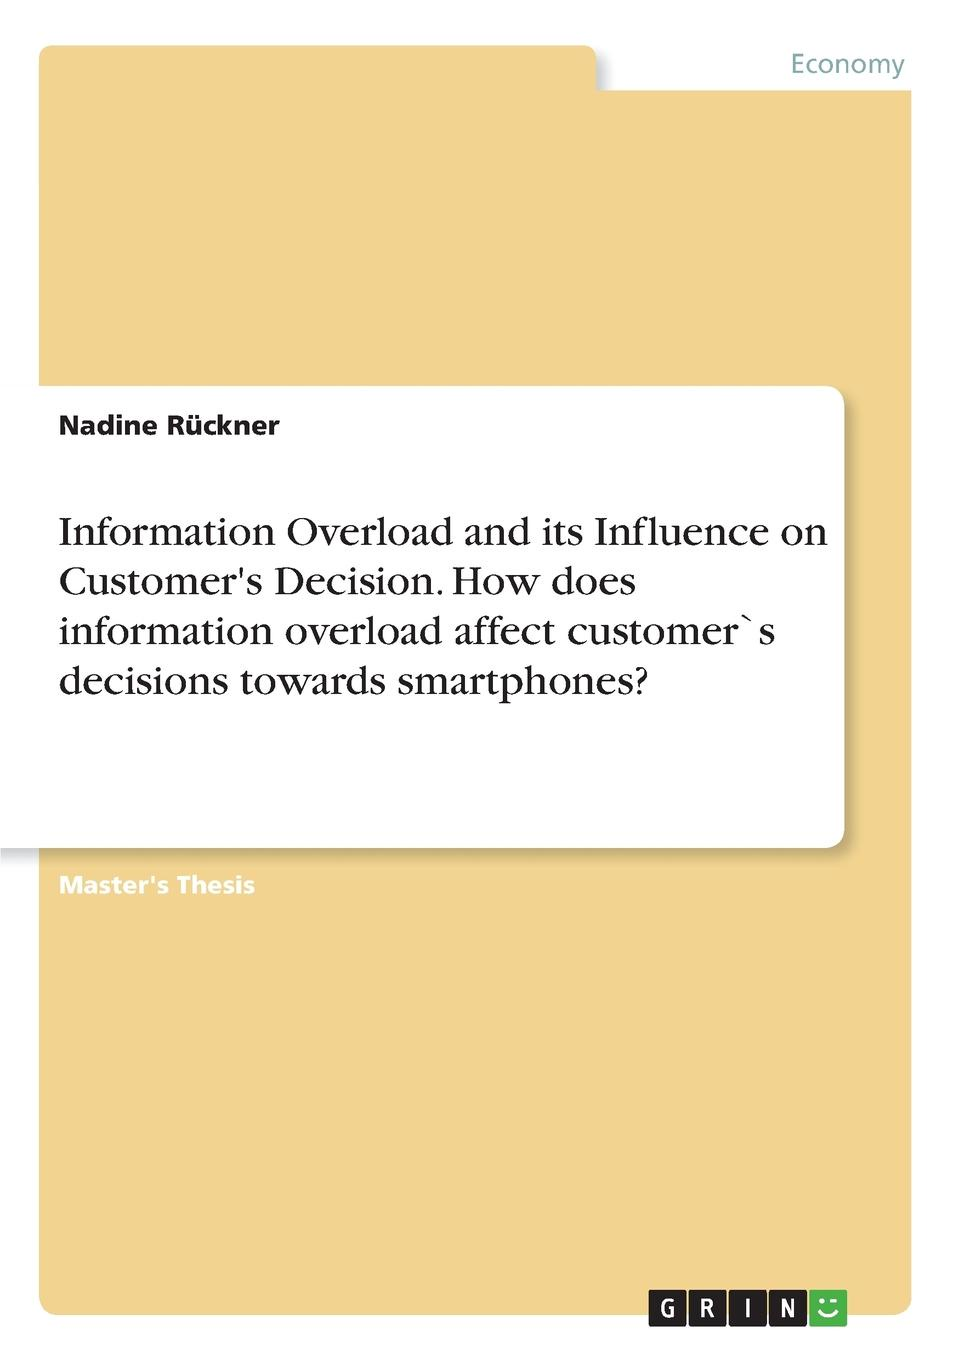 Nadine Rückner Information Overload and its Influence on Customer.s Decision. How does information overload affect customer.s decisions towards smartphones. patrick allo putting information first luciano floridi and the philosophy of information